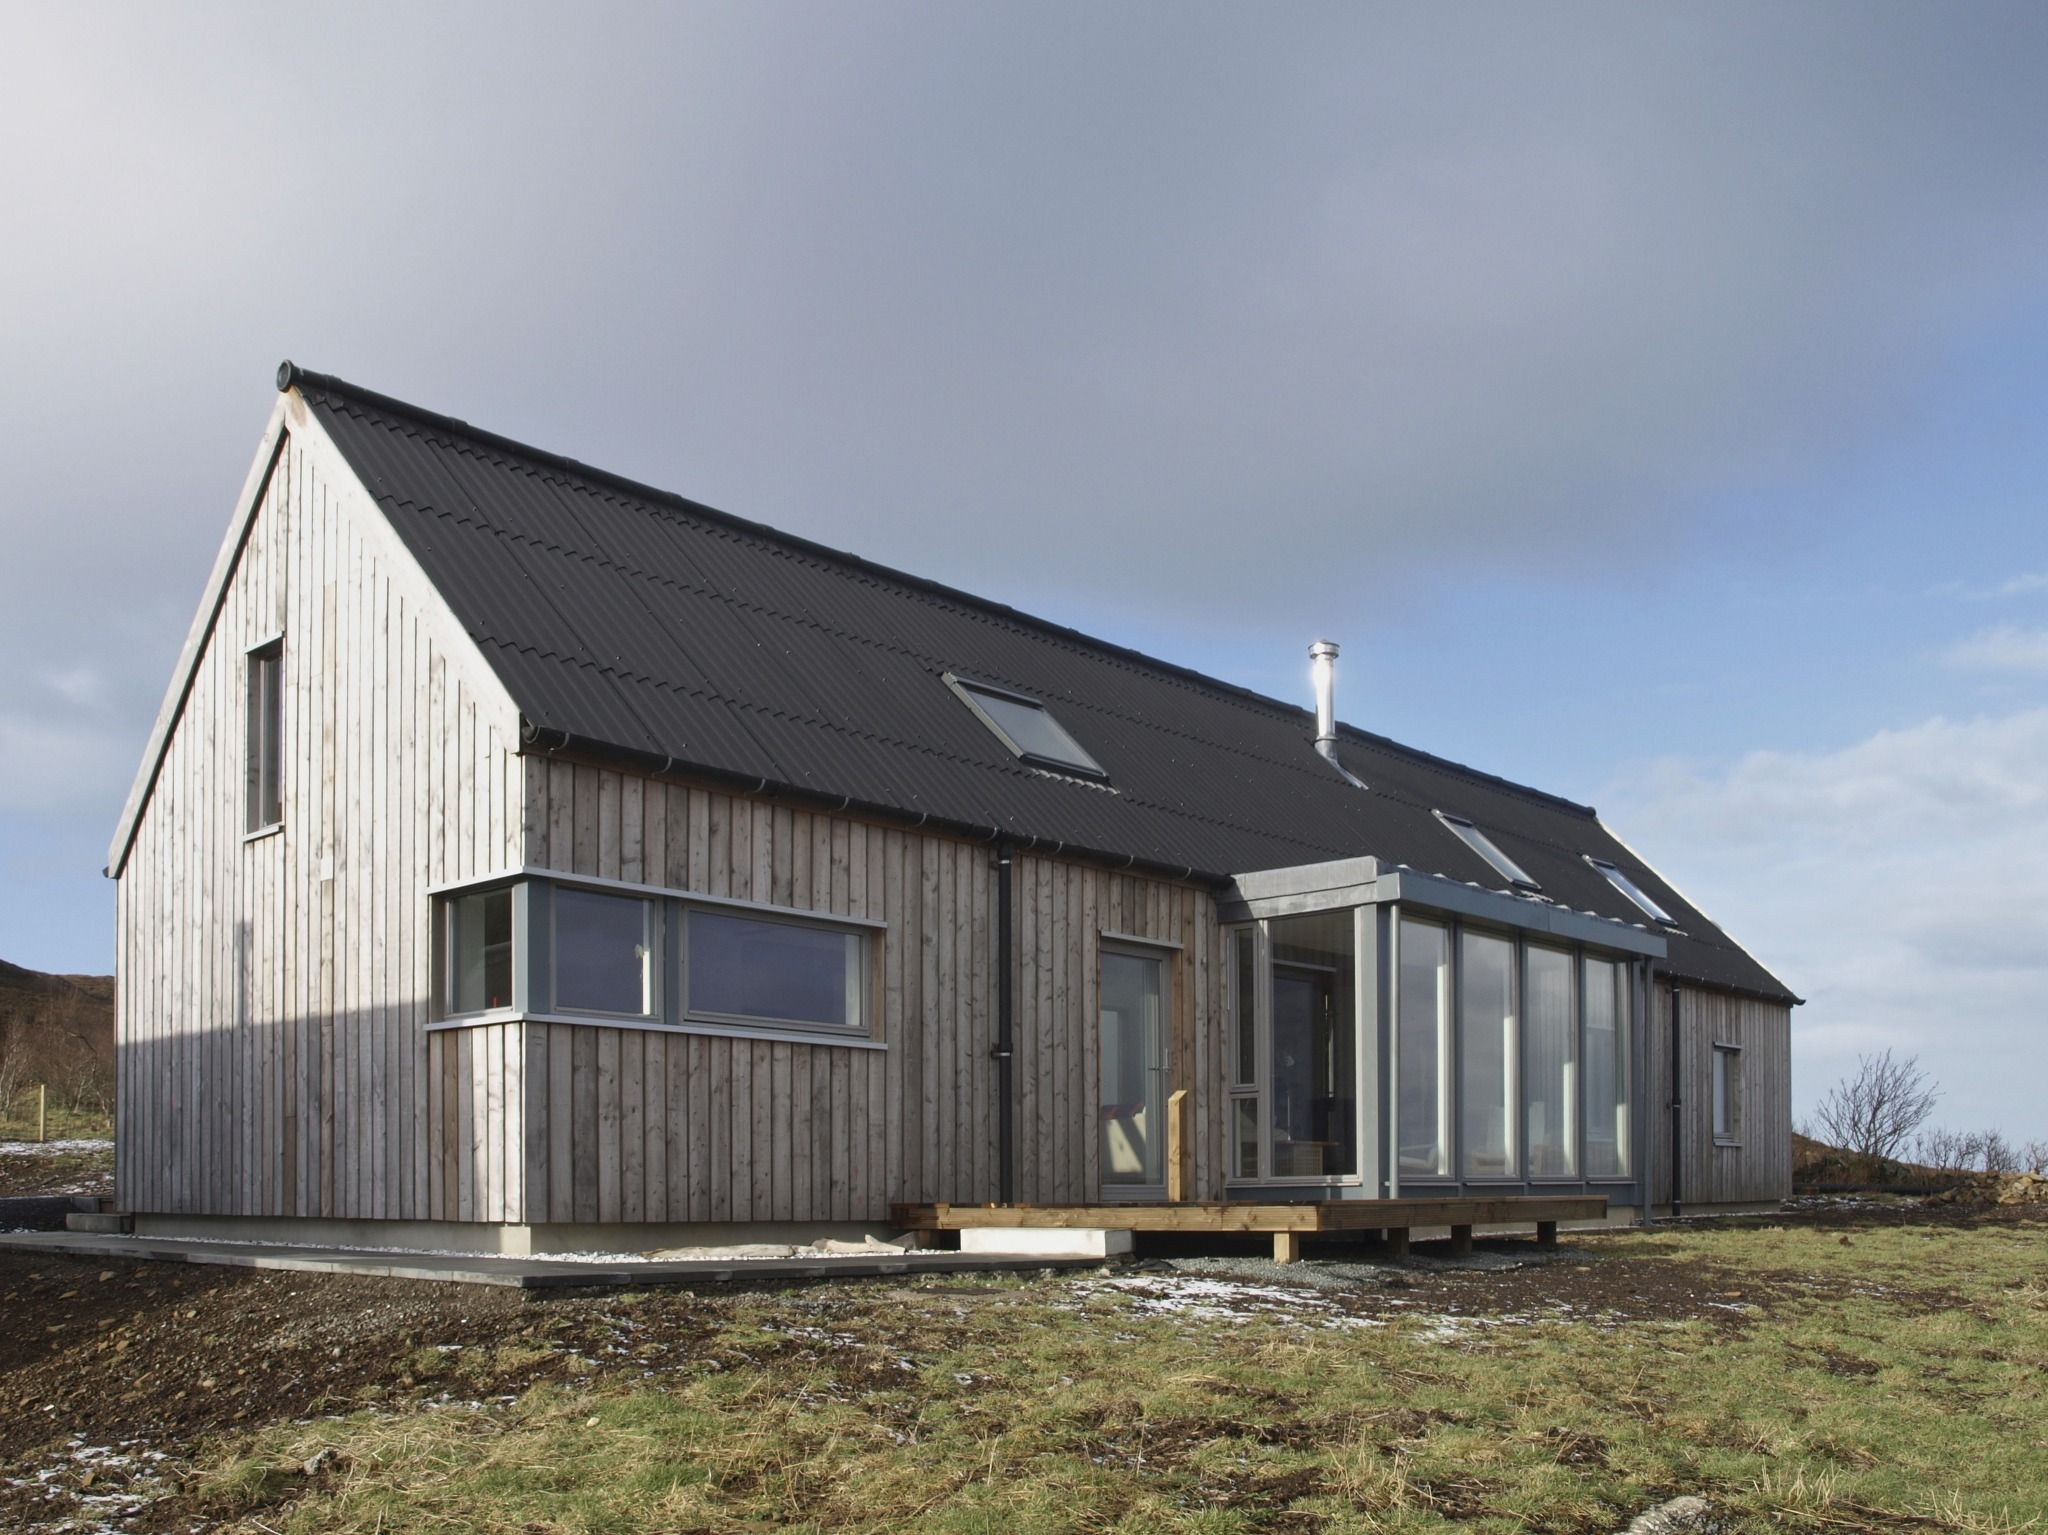 House Designs Scotland Husabost The Long House Rural Design Architects Isle